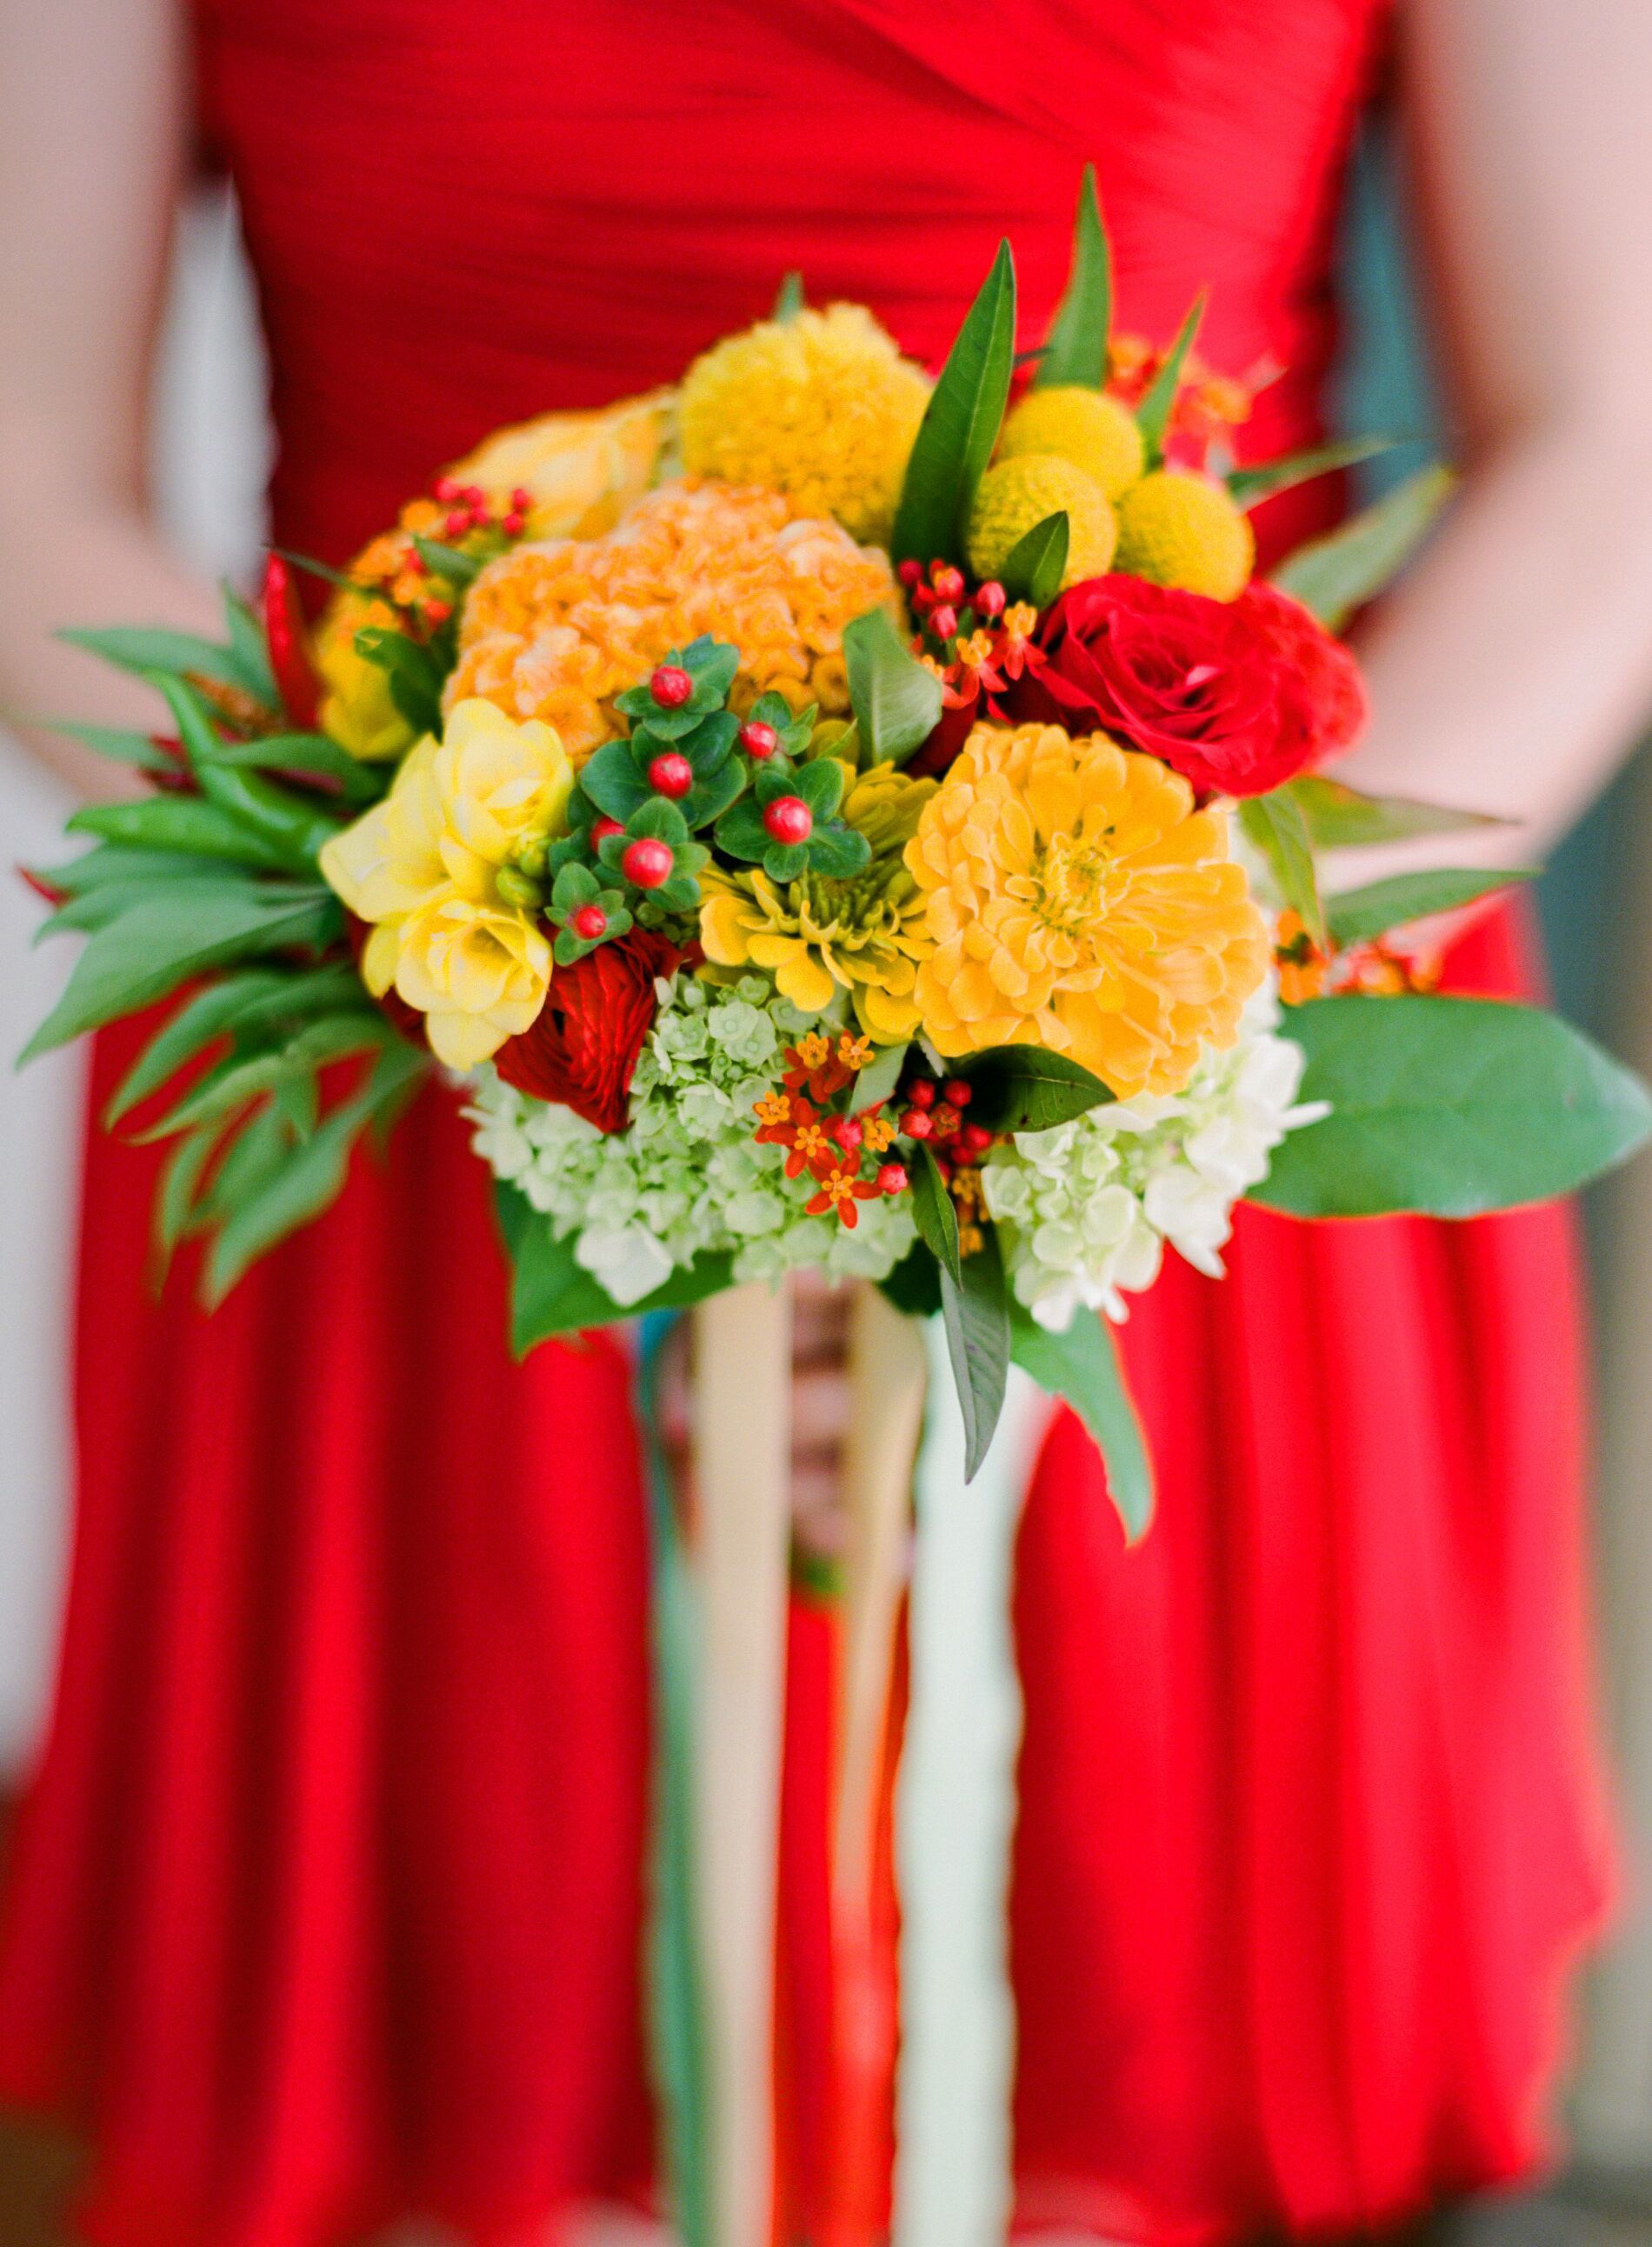 Top 13 Wedding Color and Style Mistakes Not to Make